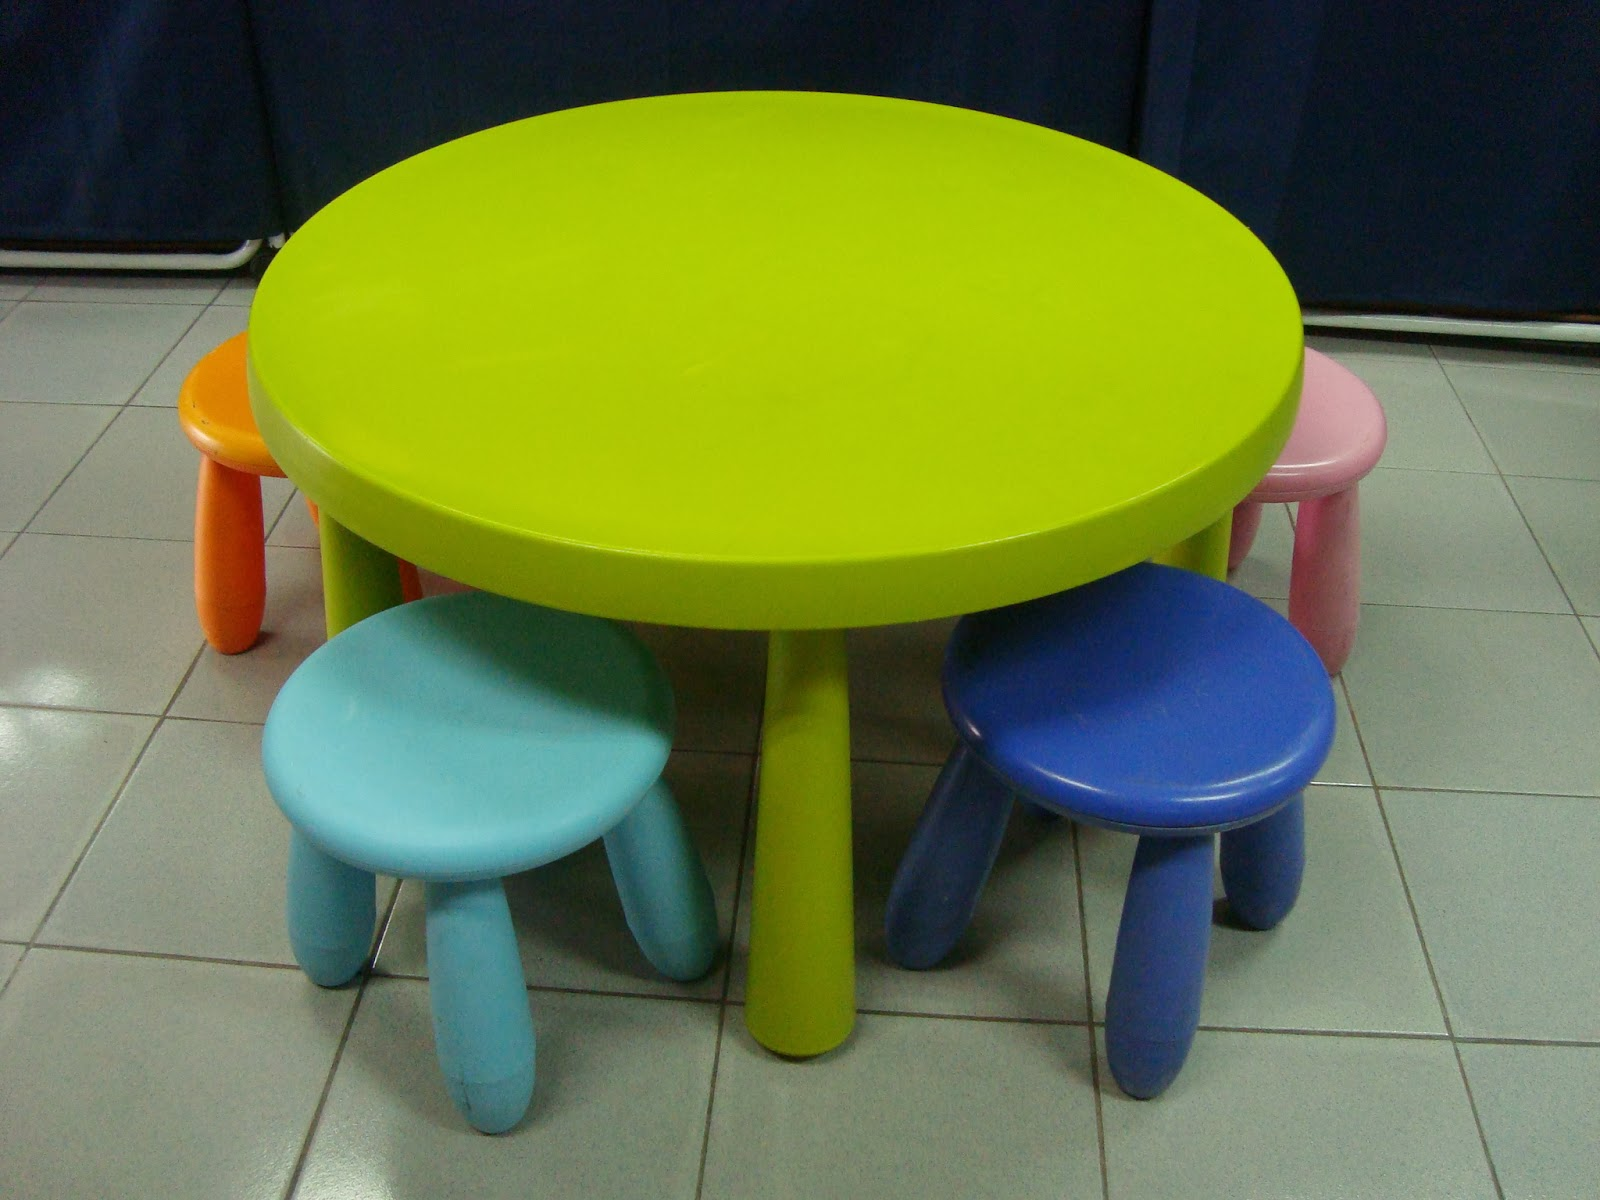 Plastic Chairs Ikea Kedai Bundle Toys Thetottoys Ikea Mammut Round Table With